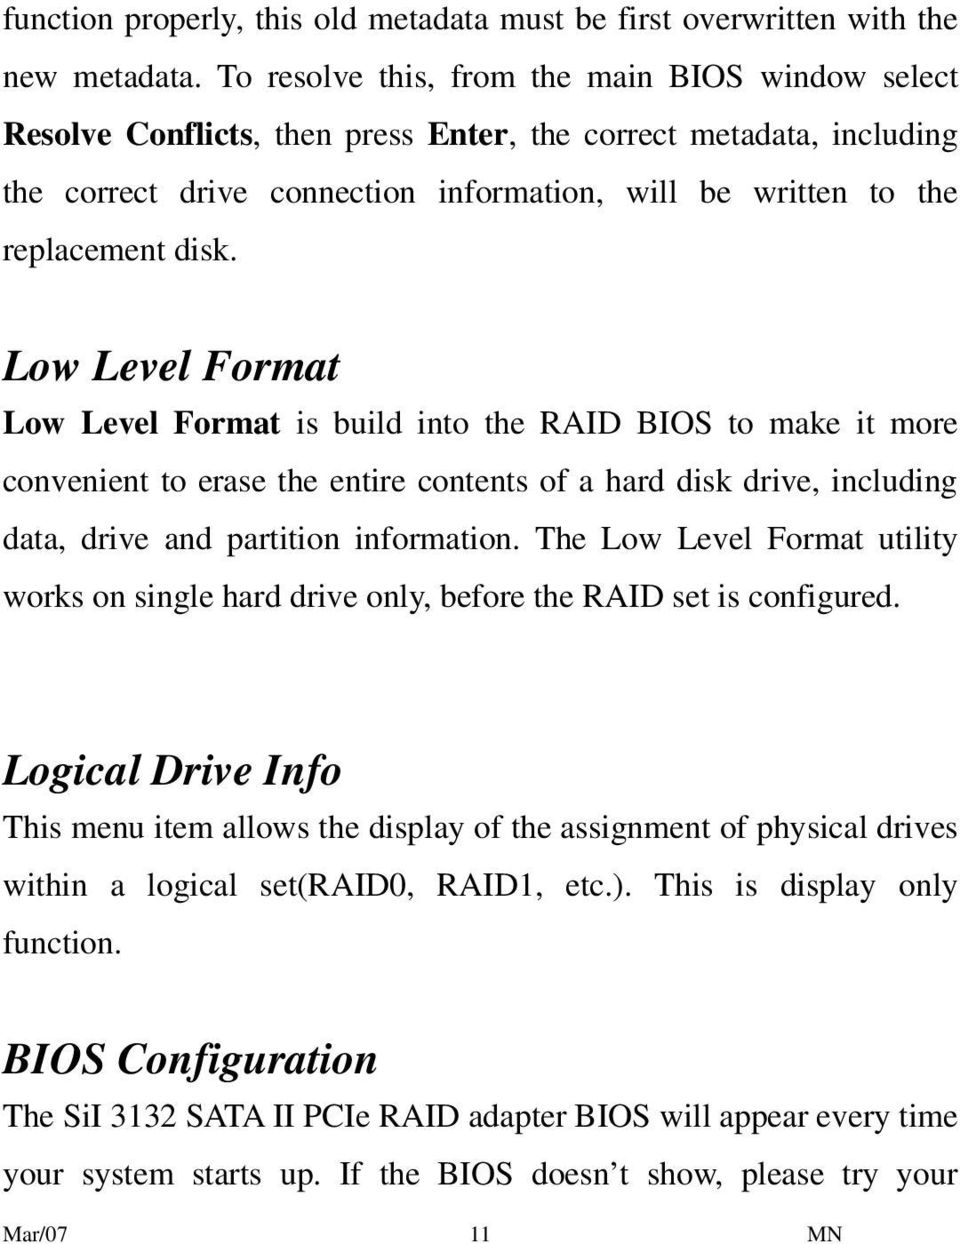 disk. Low Level Format Low Level Format is build into the RAID BIOS to make it more convenient to erase the entire contents of a hard disk drive, including data, drive and partition information.